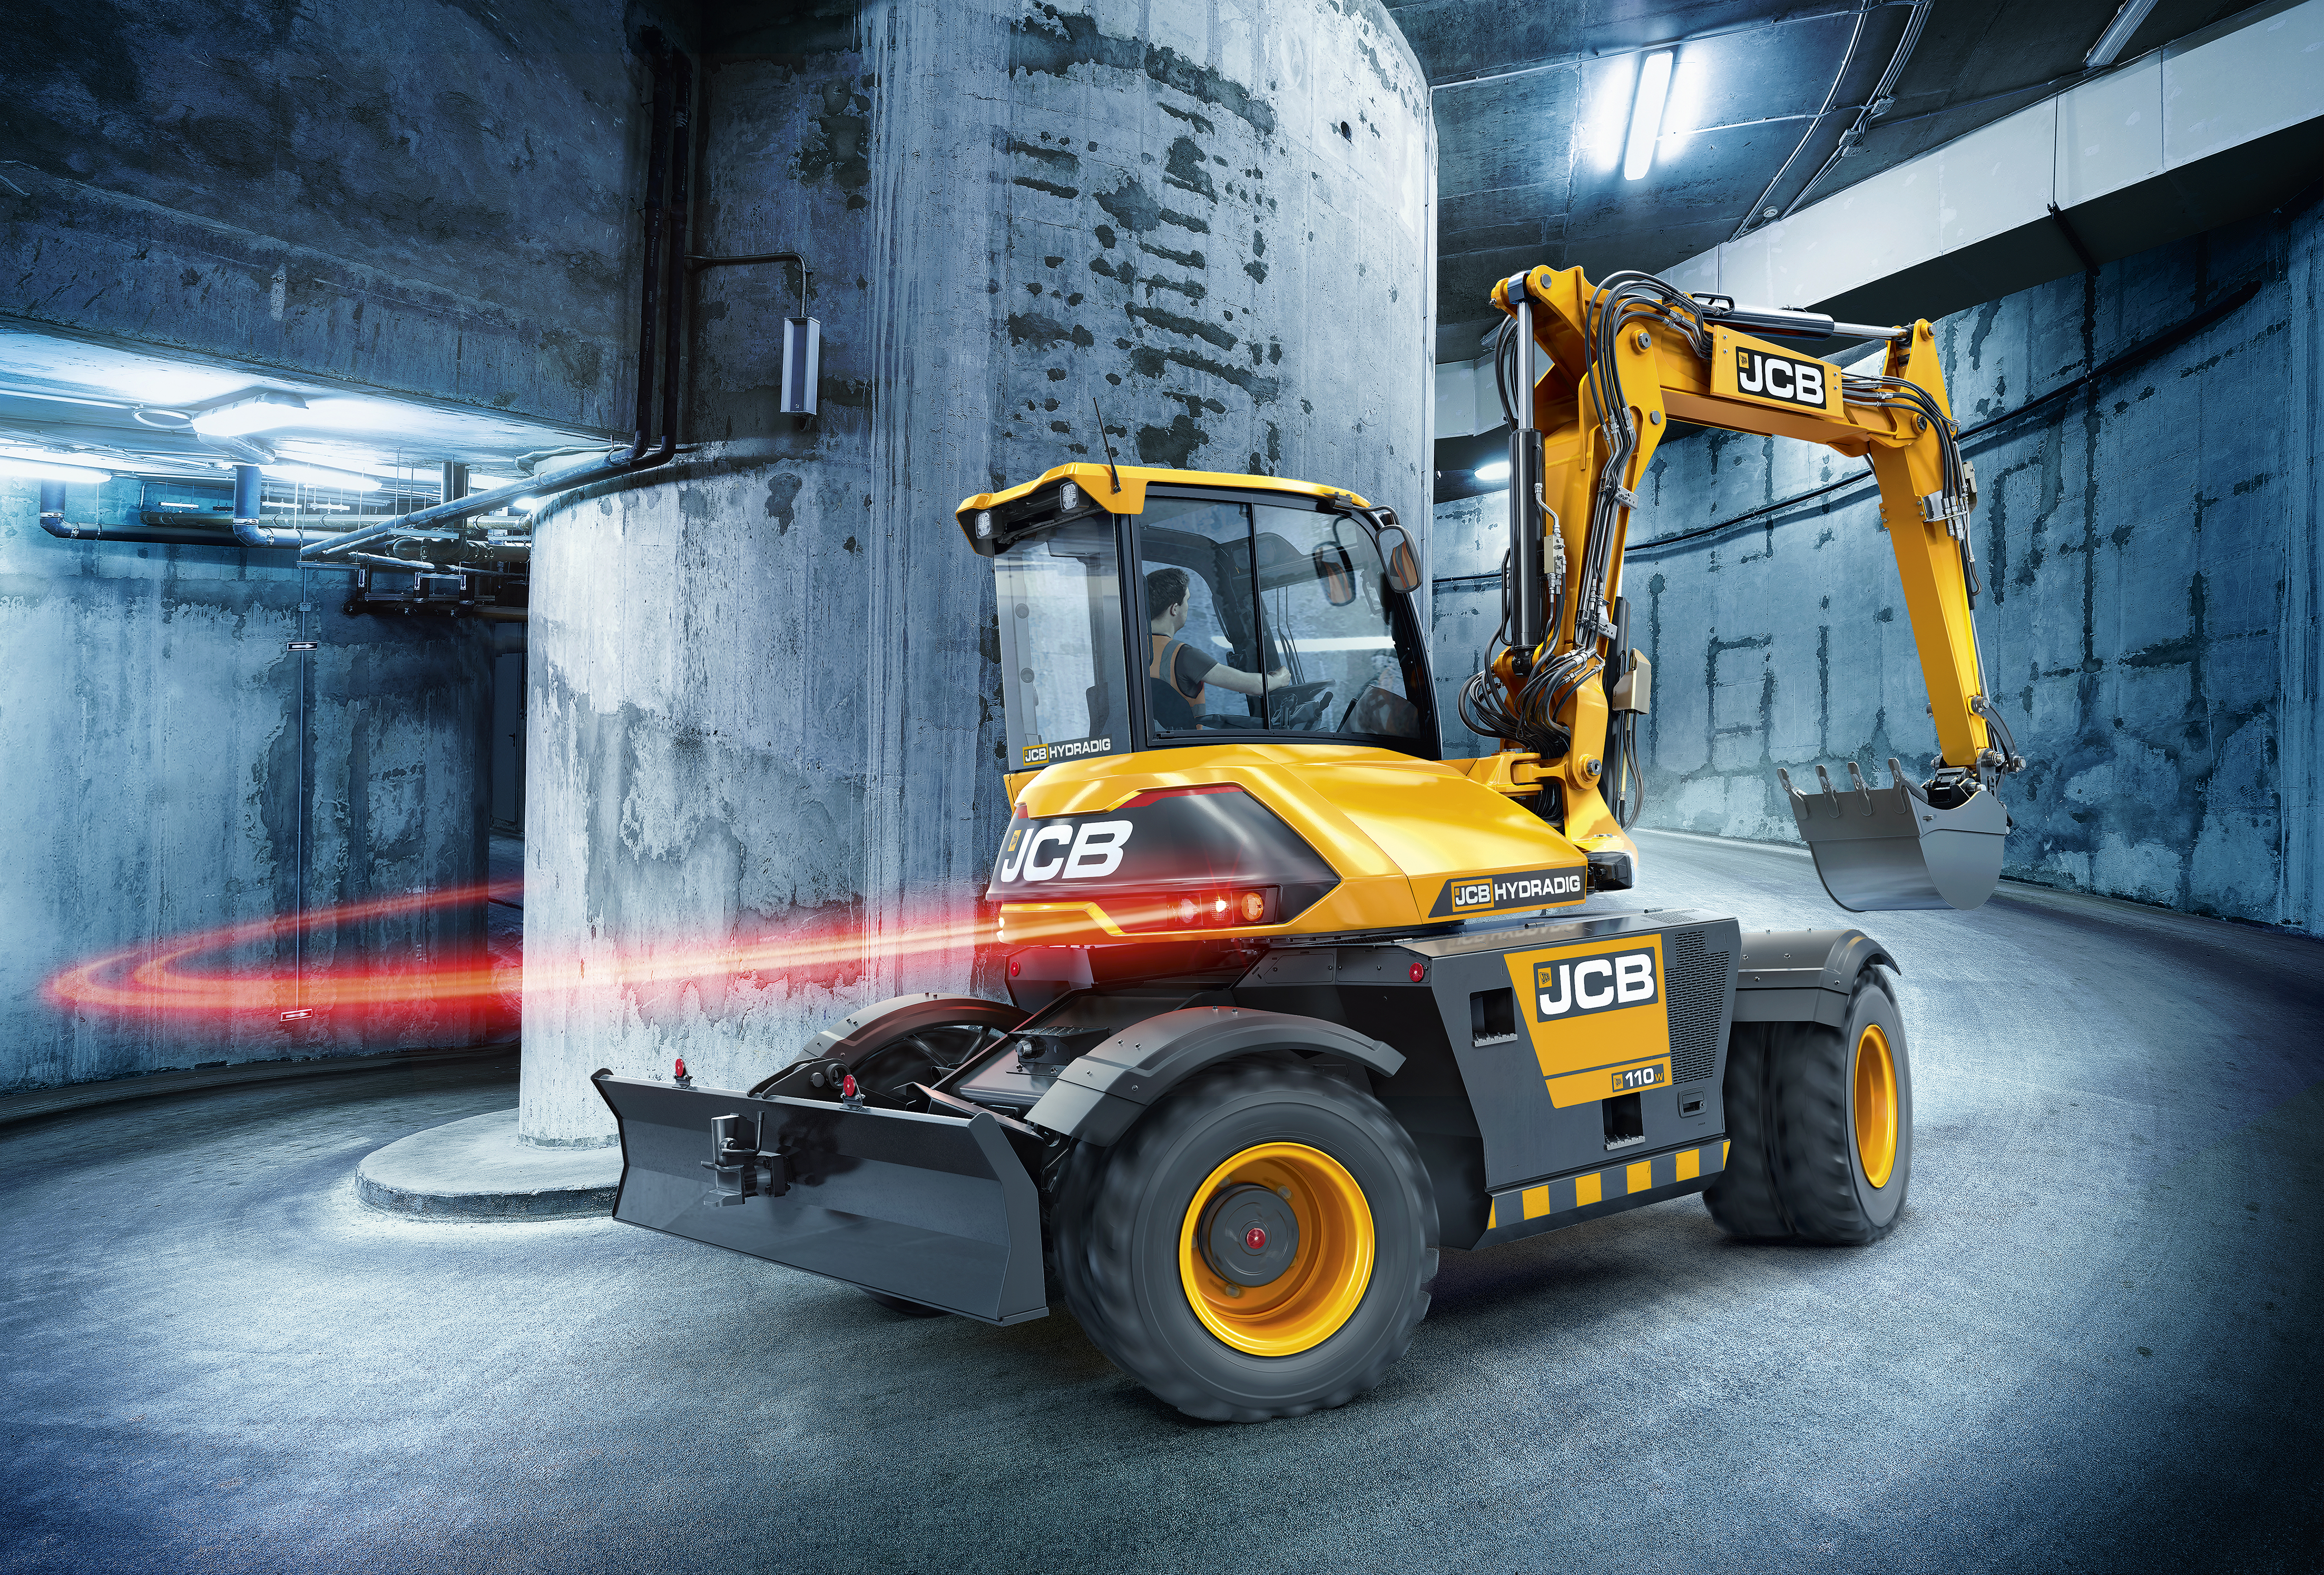 The new JCB Hydradig launched in 2016